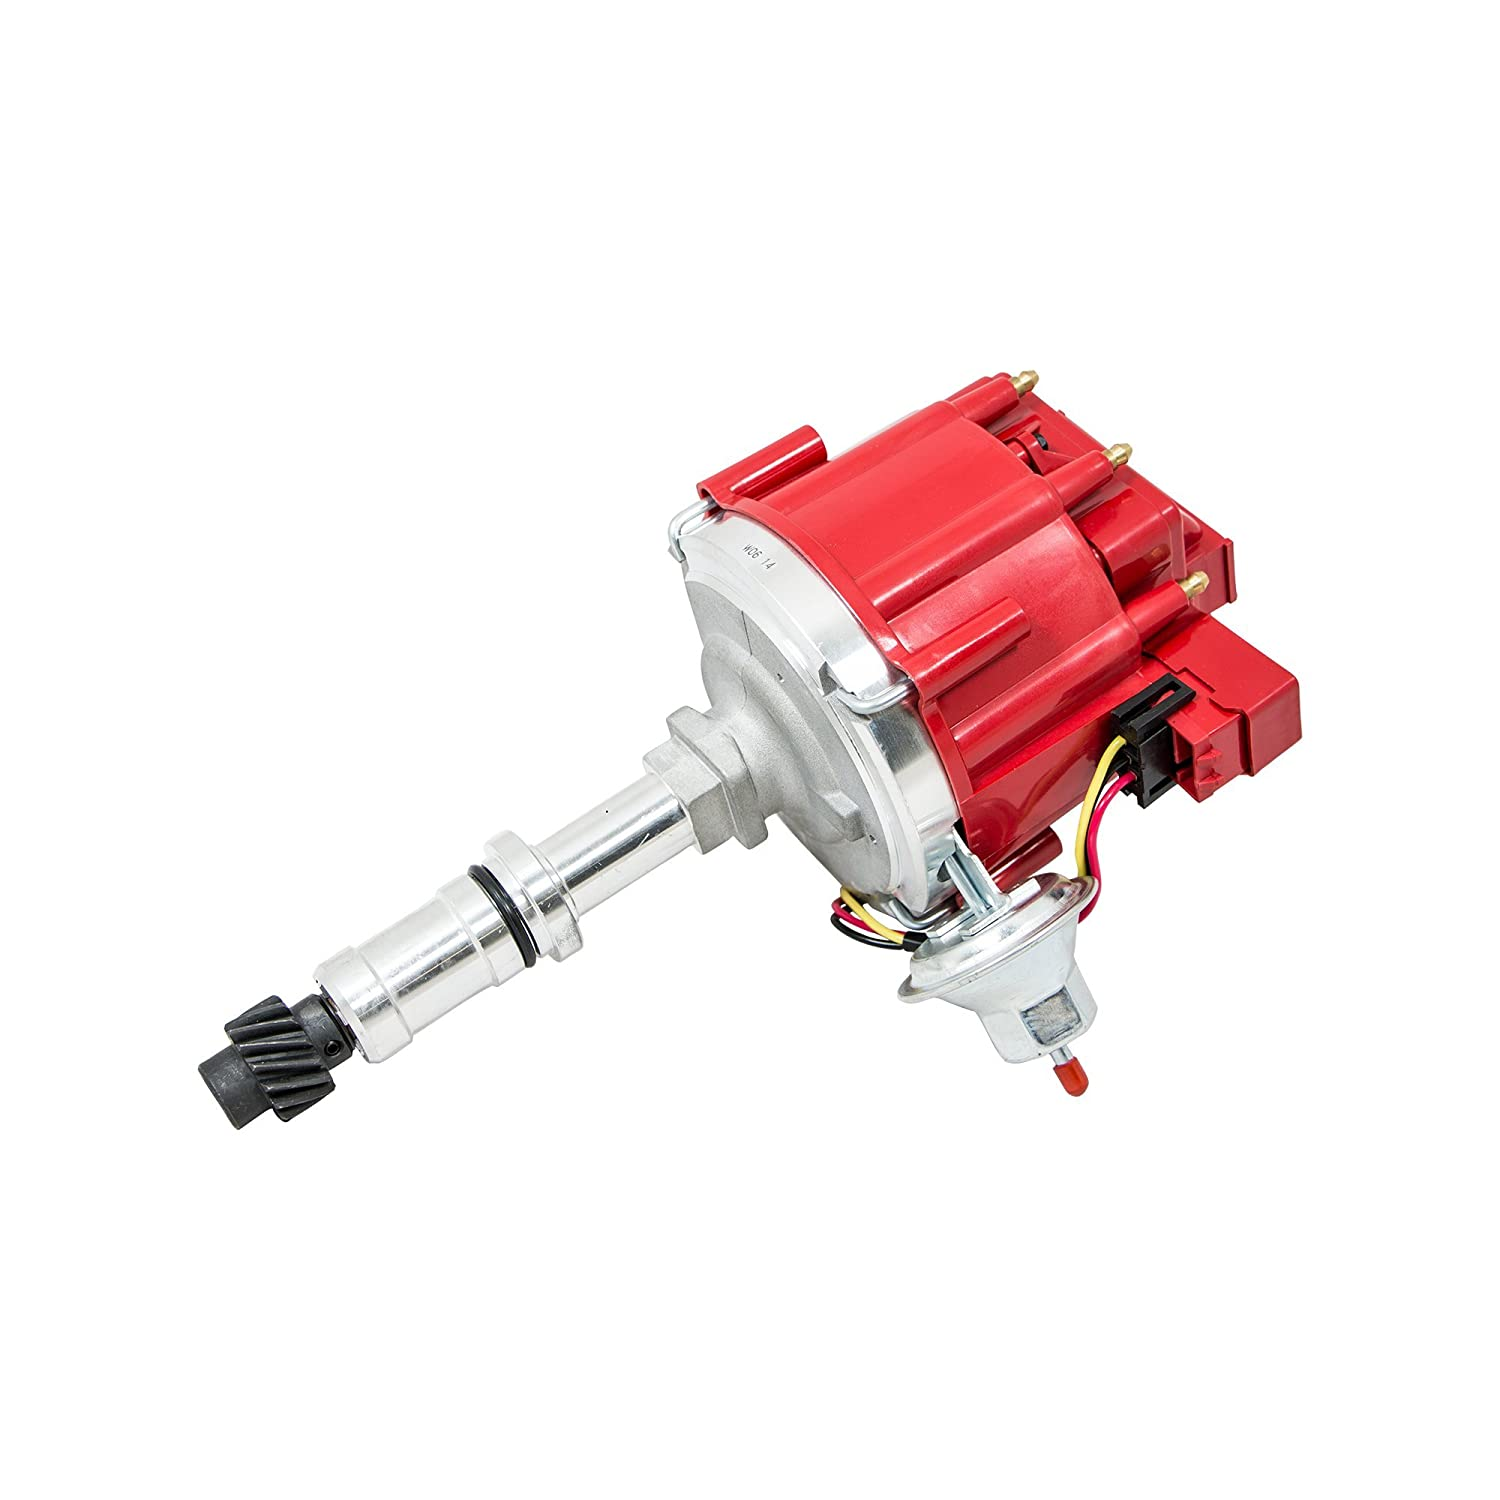 Top Street Performance JM6525R HEI Distributor with Red Cap